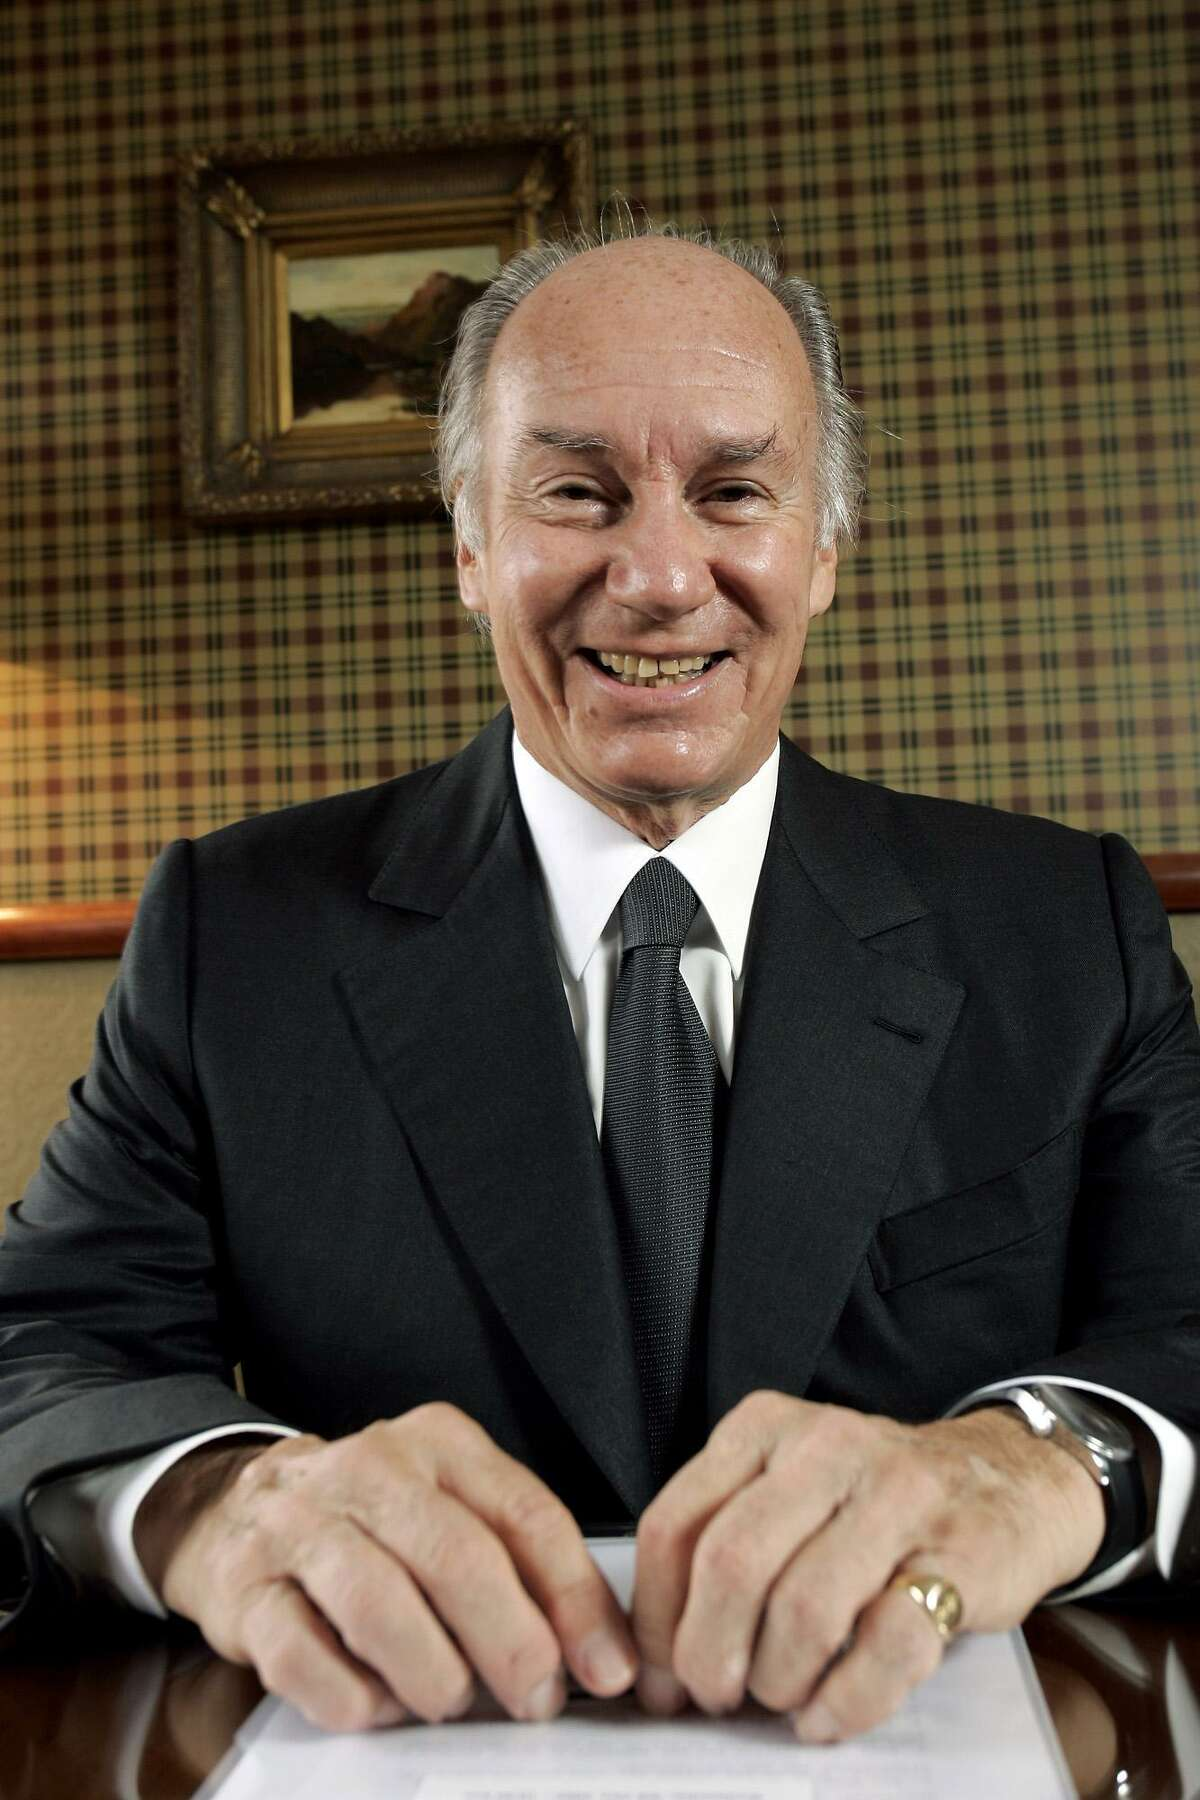 His Highness Prince Karim Aga Khan IV, the 49th Imam of the Ismaili Muslims, speaks during a 2005 interview with Bloomberg News in Edinburgh, Scotland.